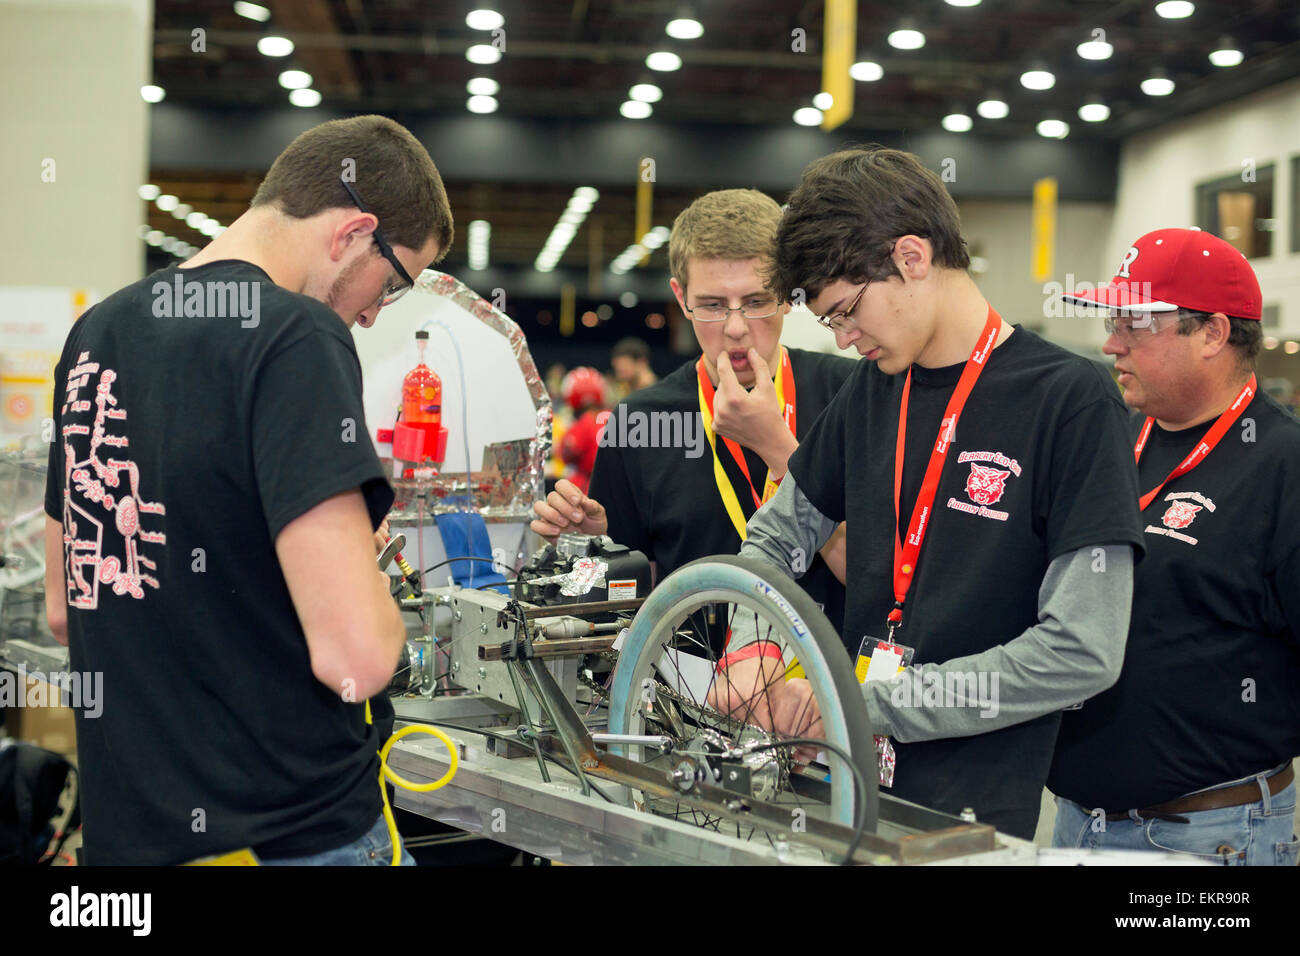 Detroit, Michigan - A team from Ruston High School in Louisiana prepares to compete in the Shell Eco-Marathon. - Stock Image